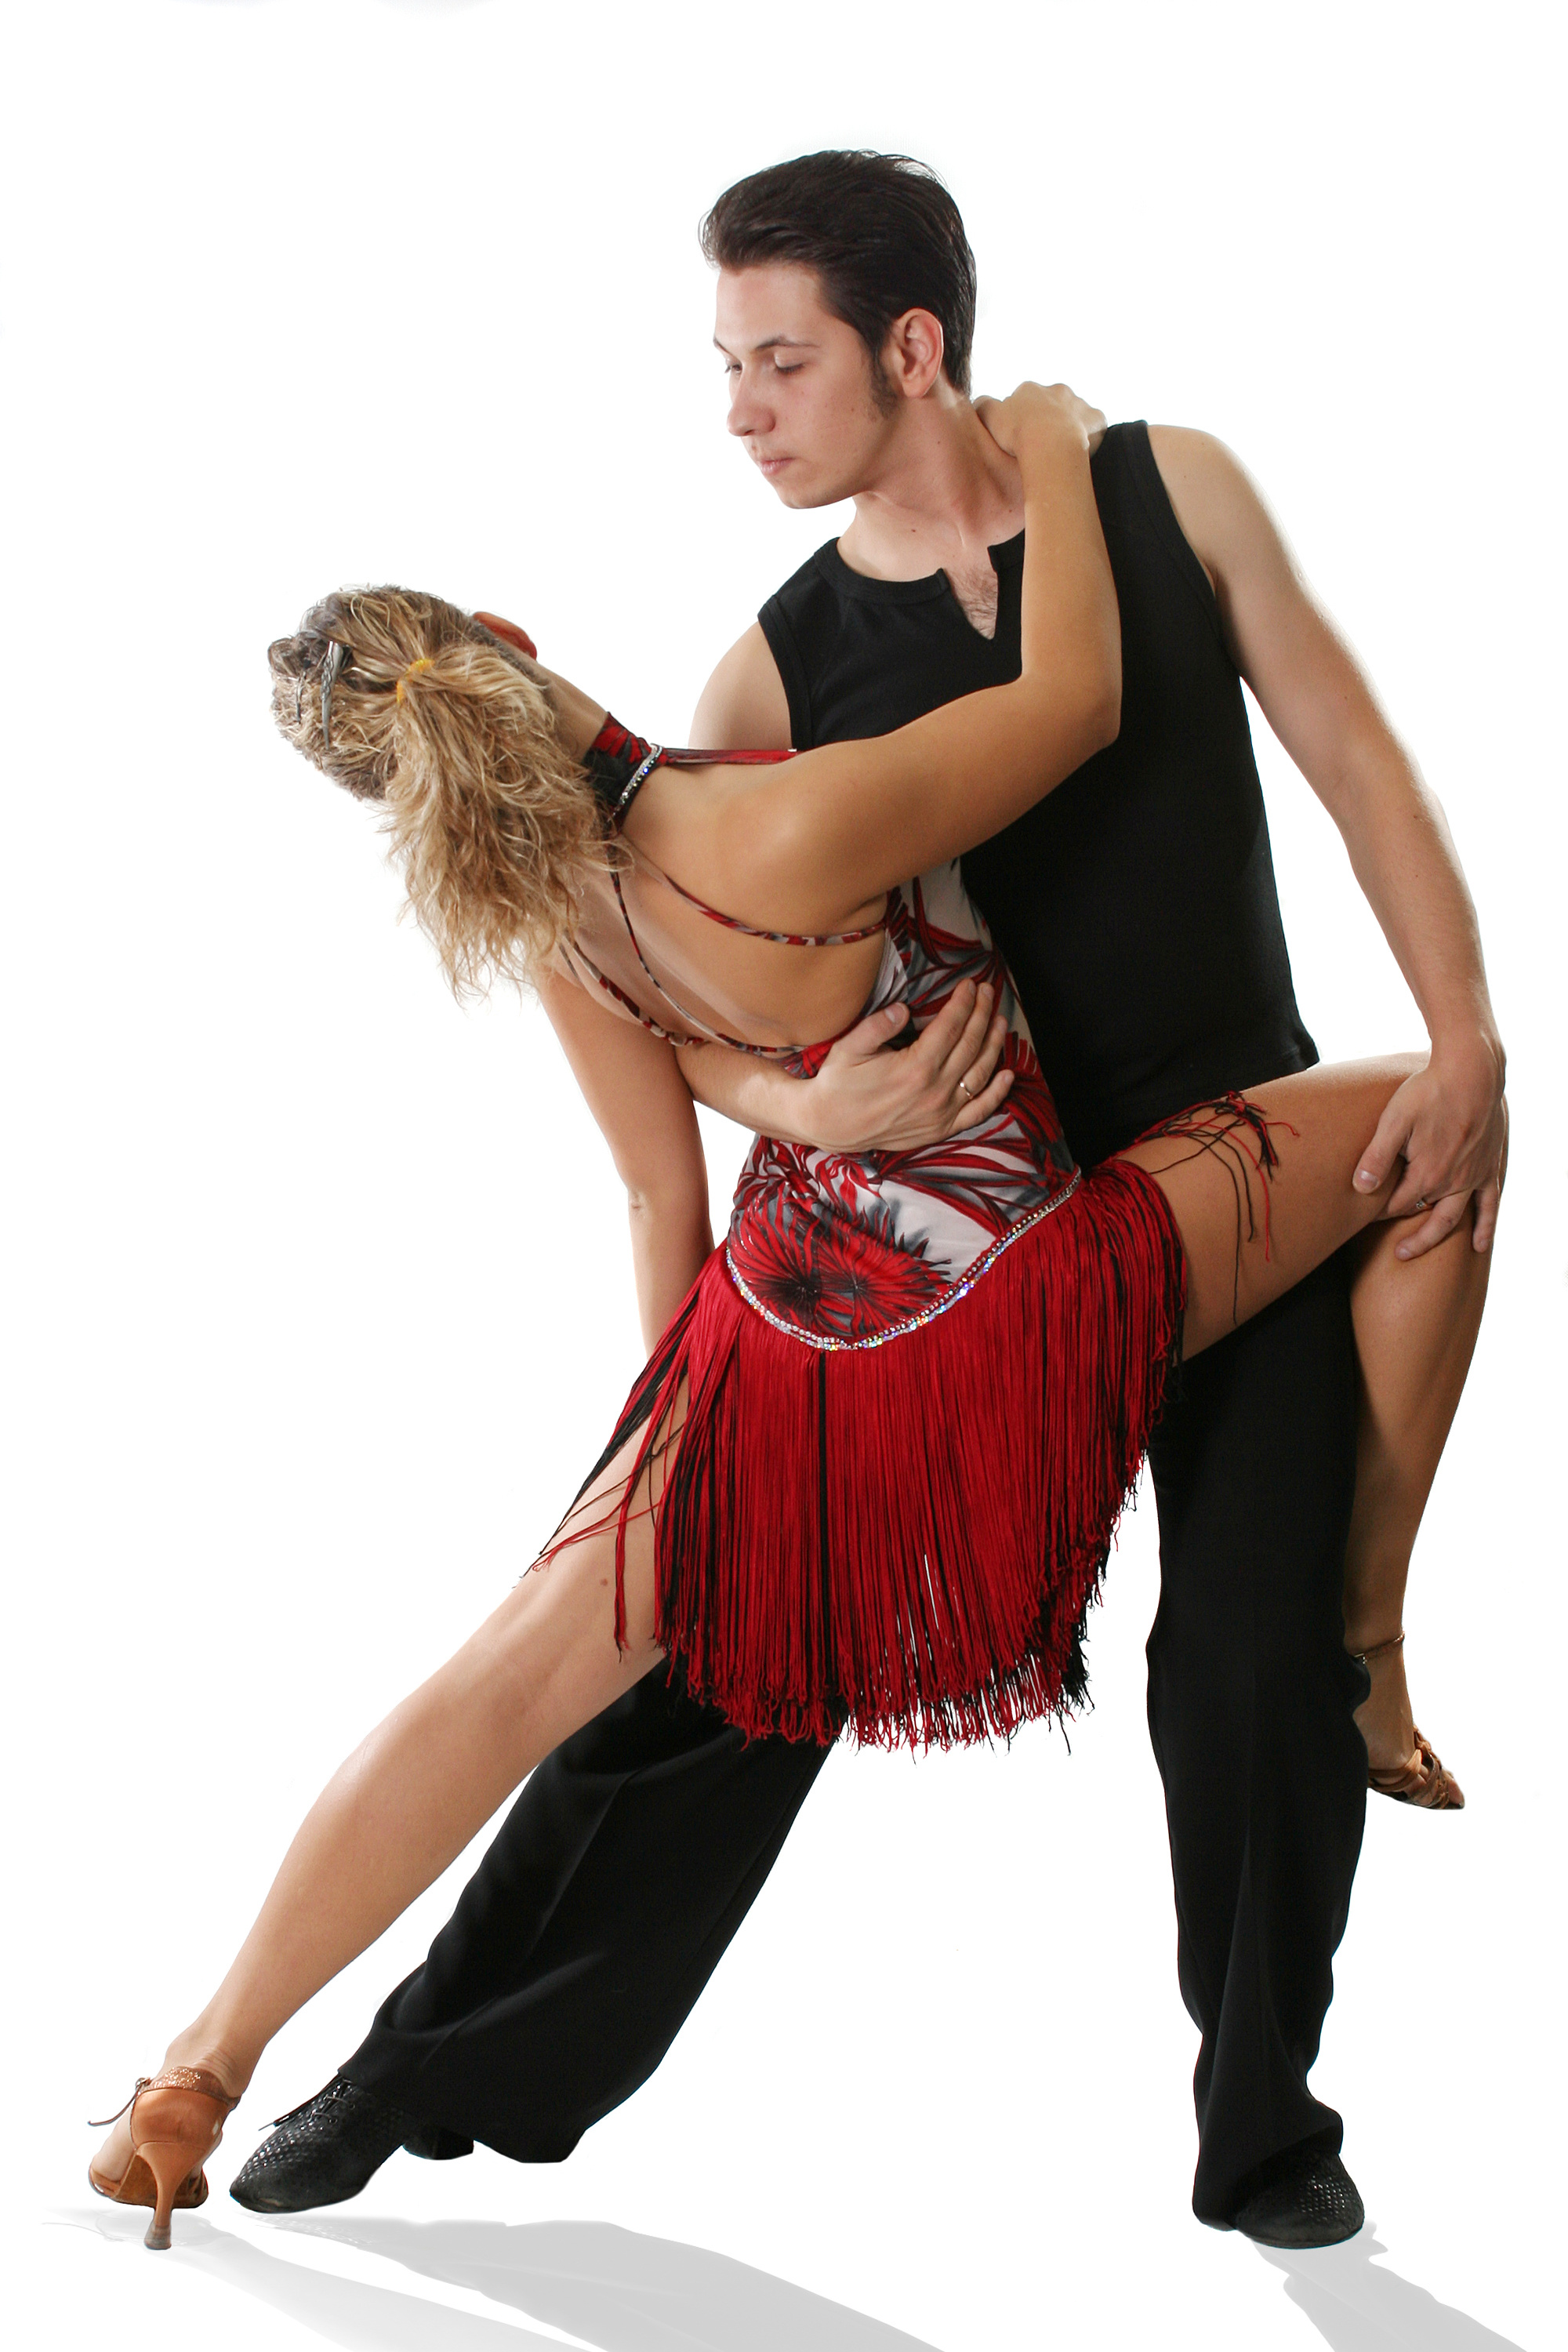 Dance Clubs Tasmania Index Directory of Dance Associations in Tasmania Australia Find Dance Clubs in Hobart TAS